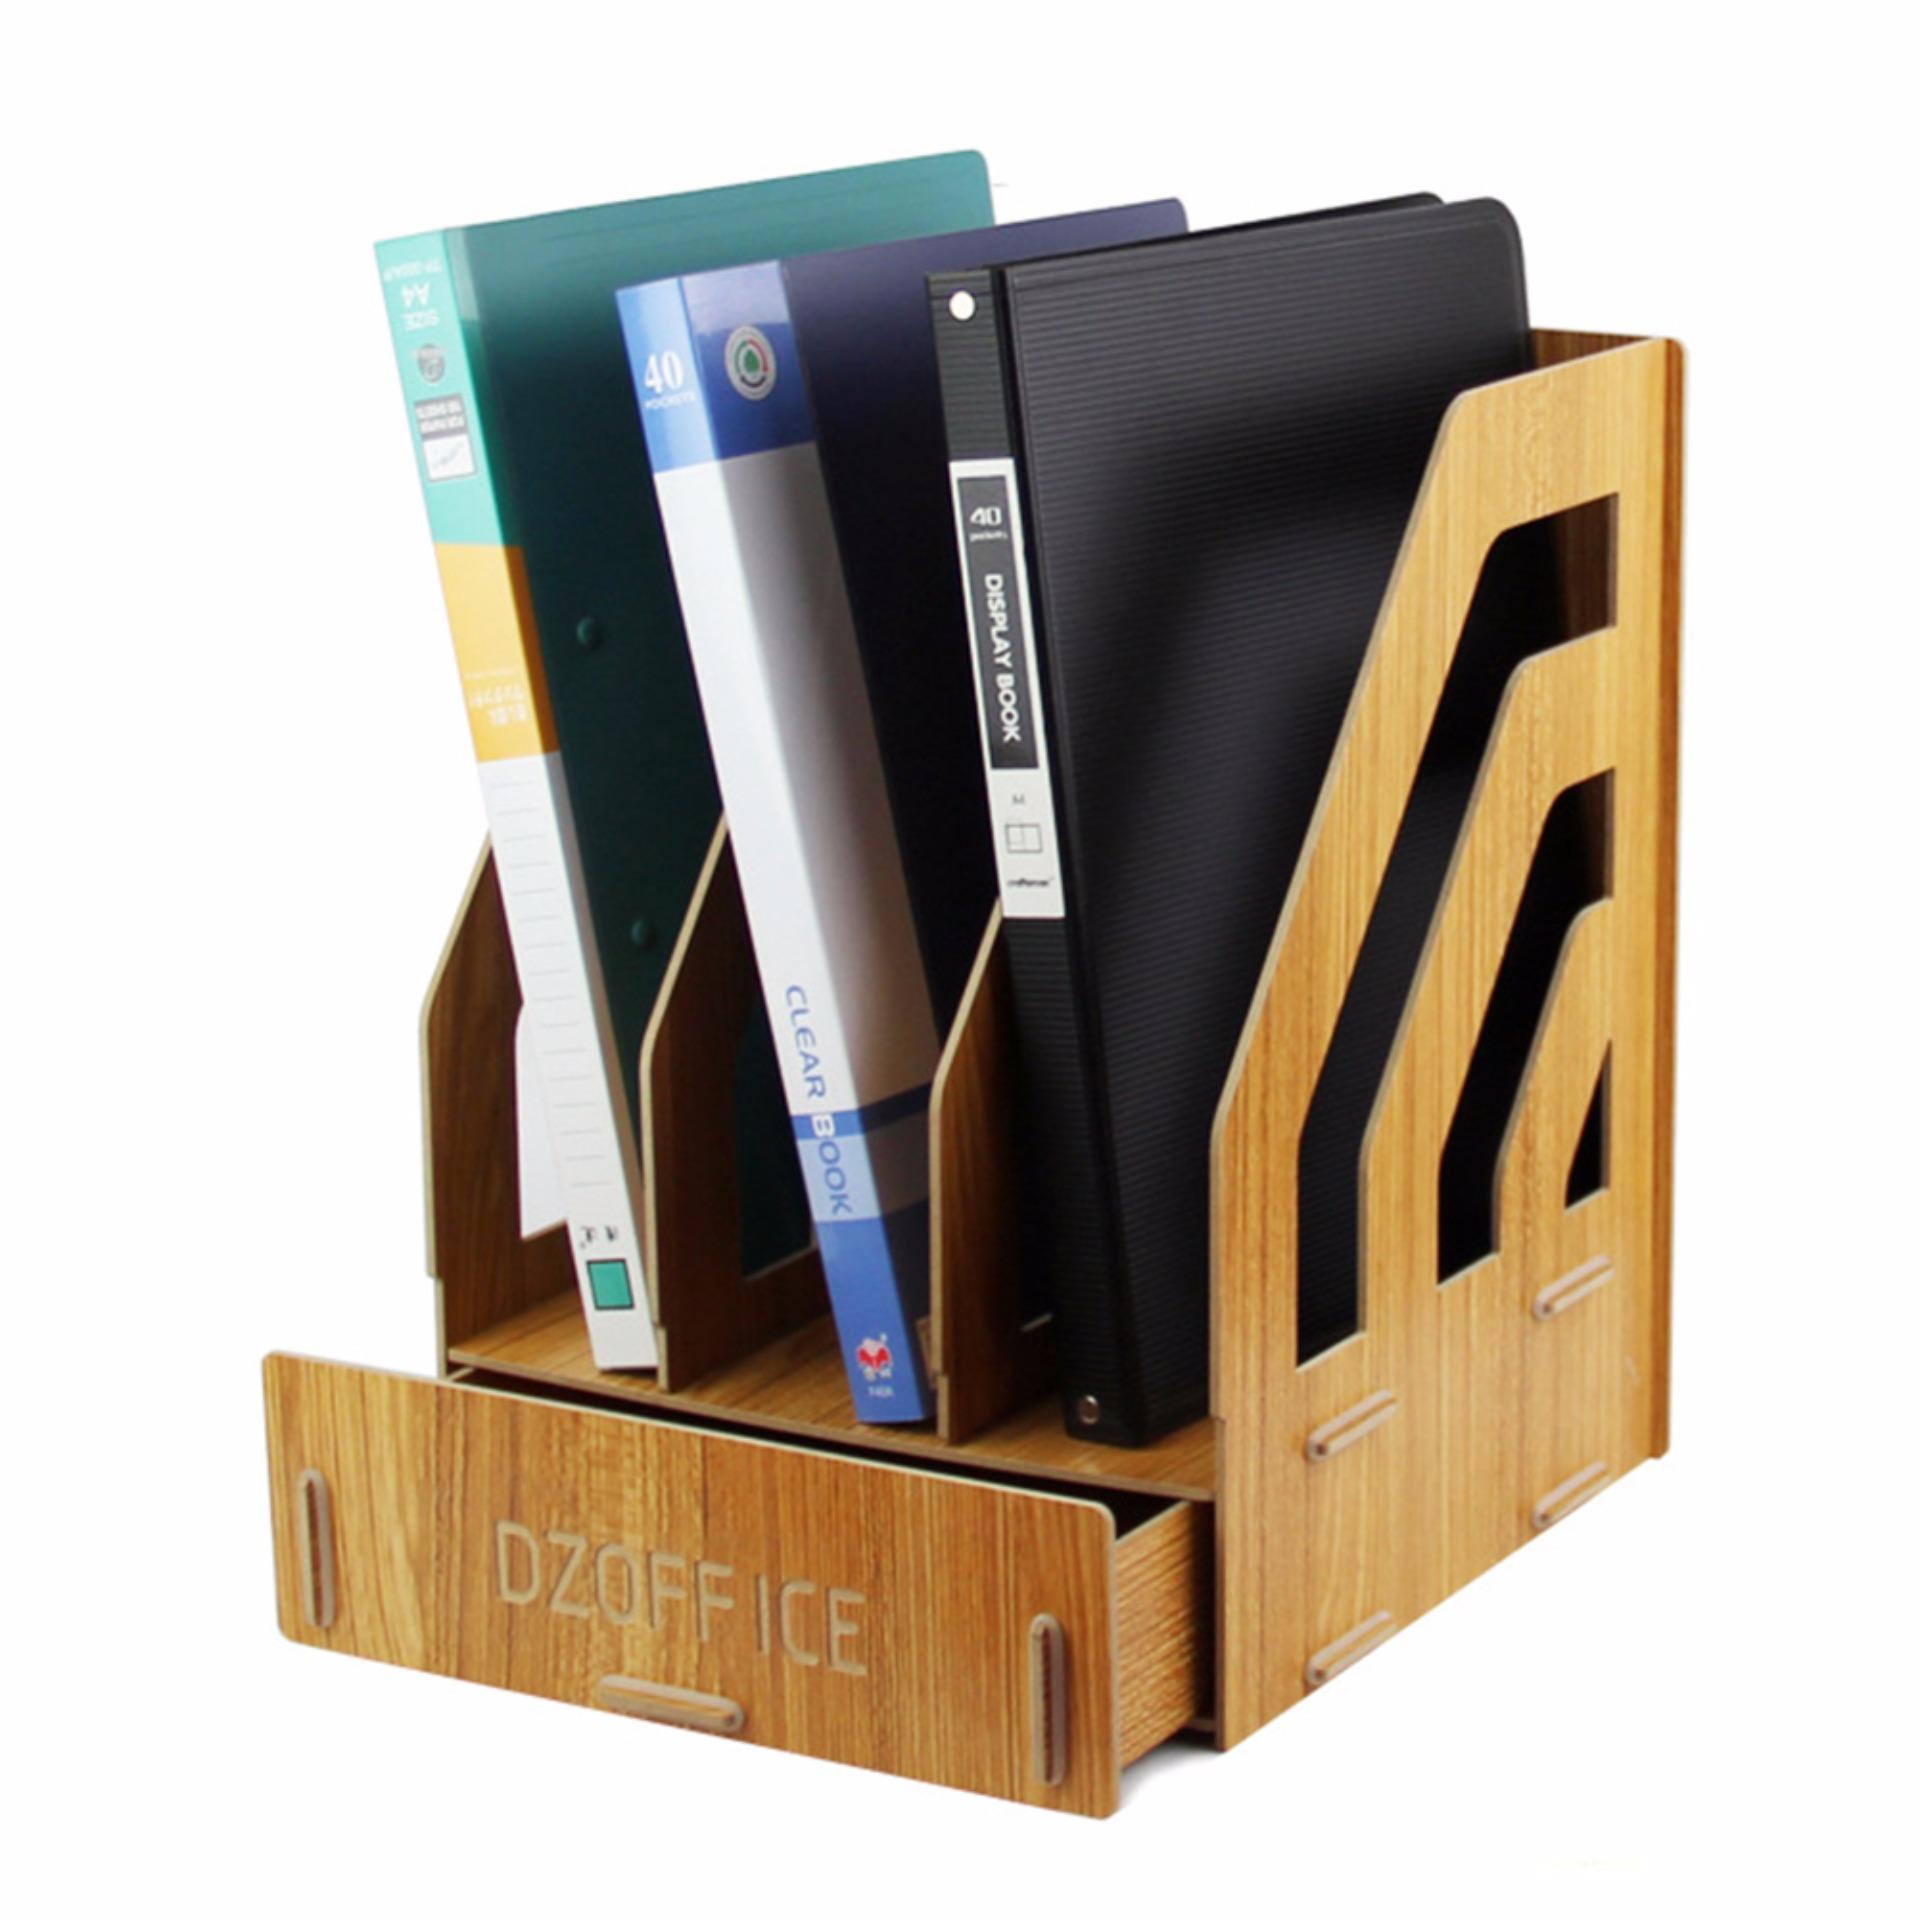 Detachable Wooden Grain Design Office Desk A4 File Rack Desktop Diyorganizer Shelf Book Storage Box